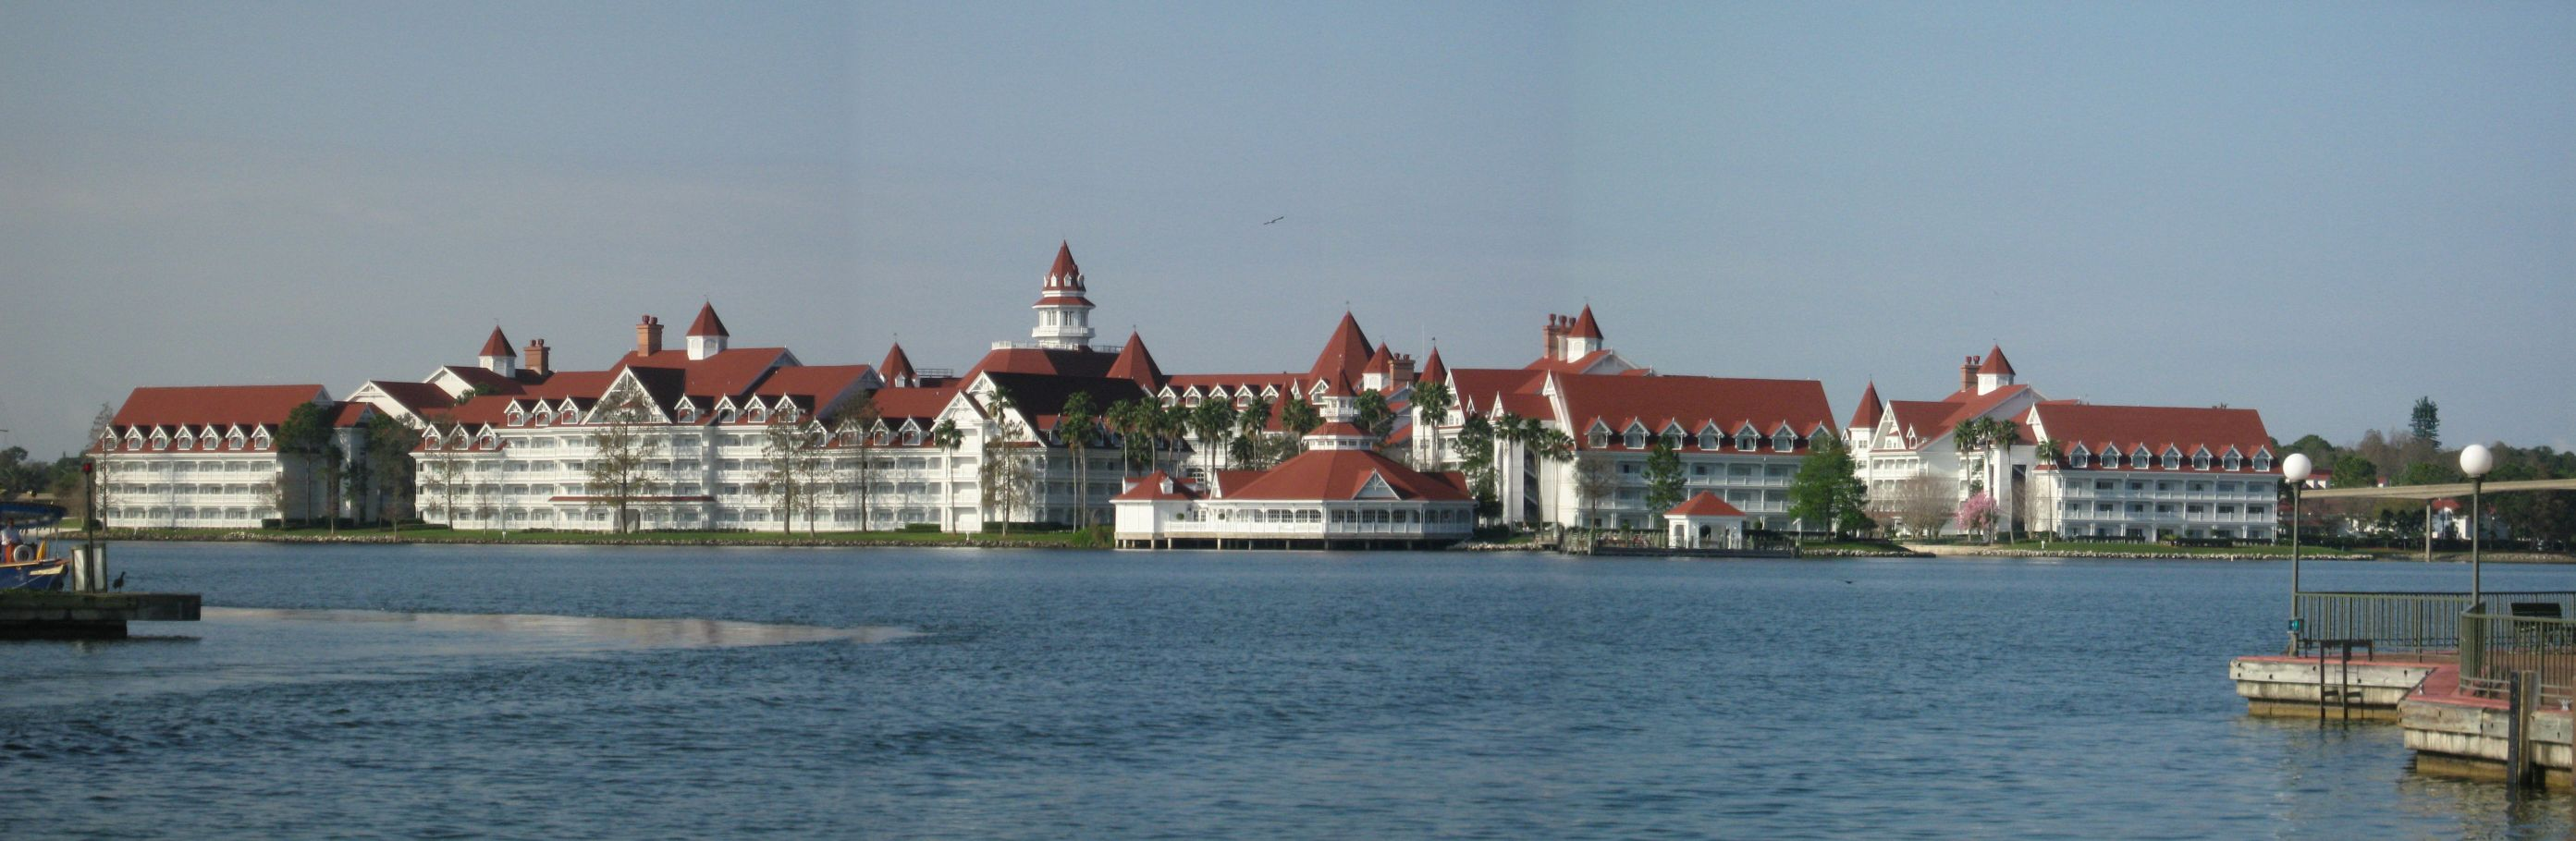 Grand Floridian Hotel Room Layout